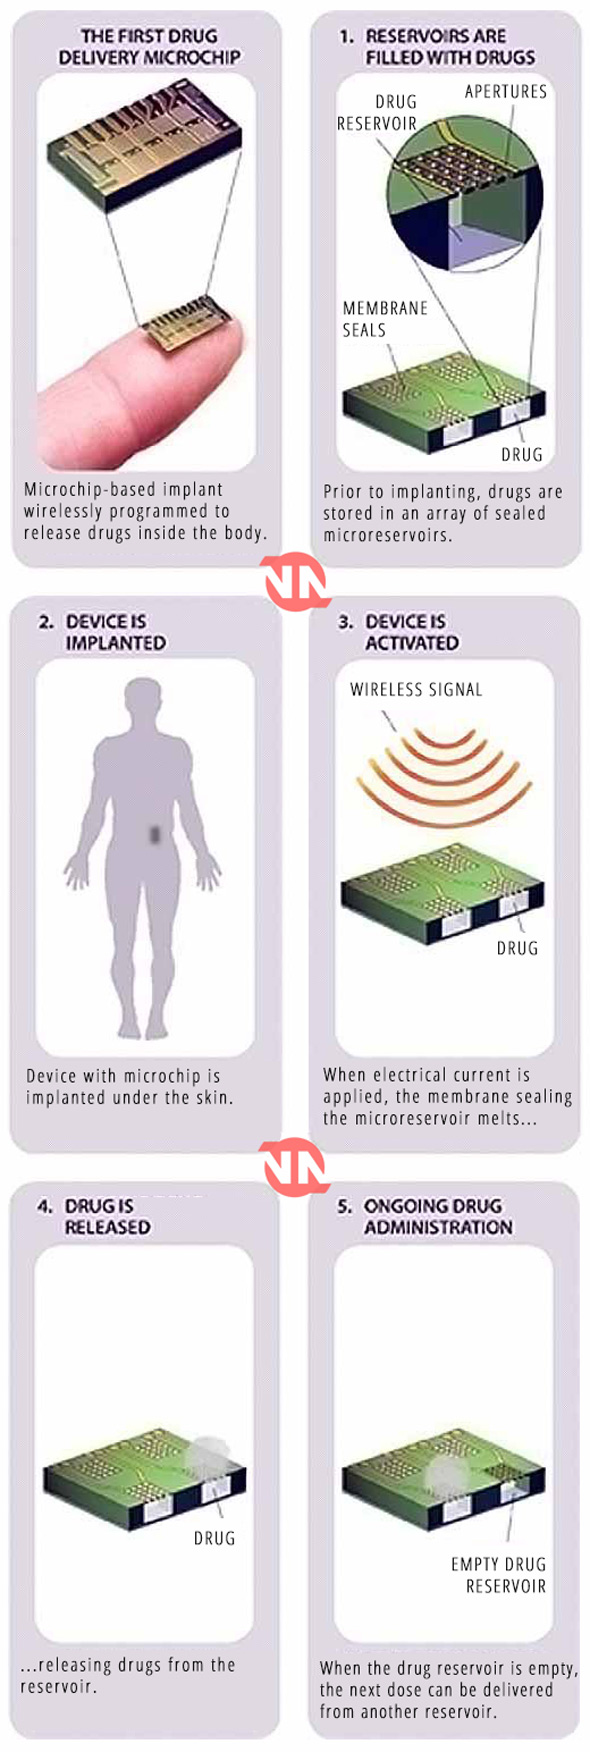 Bill Gates' New Population Control Microchip Due for Launch in 2018 | bill-gates-new-population-control-microchip-due-for-launch-2018-2217717 | Bill Gates Eugenics & Depopulation Medical & Health Multimedia RFID Chips Science & Technology Sleuth Journal